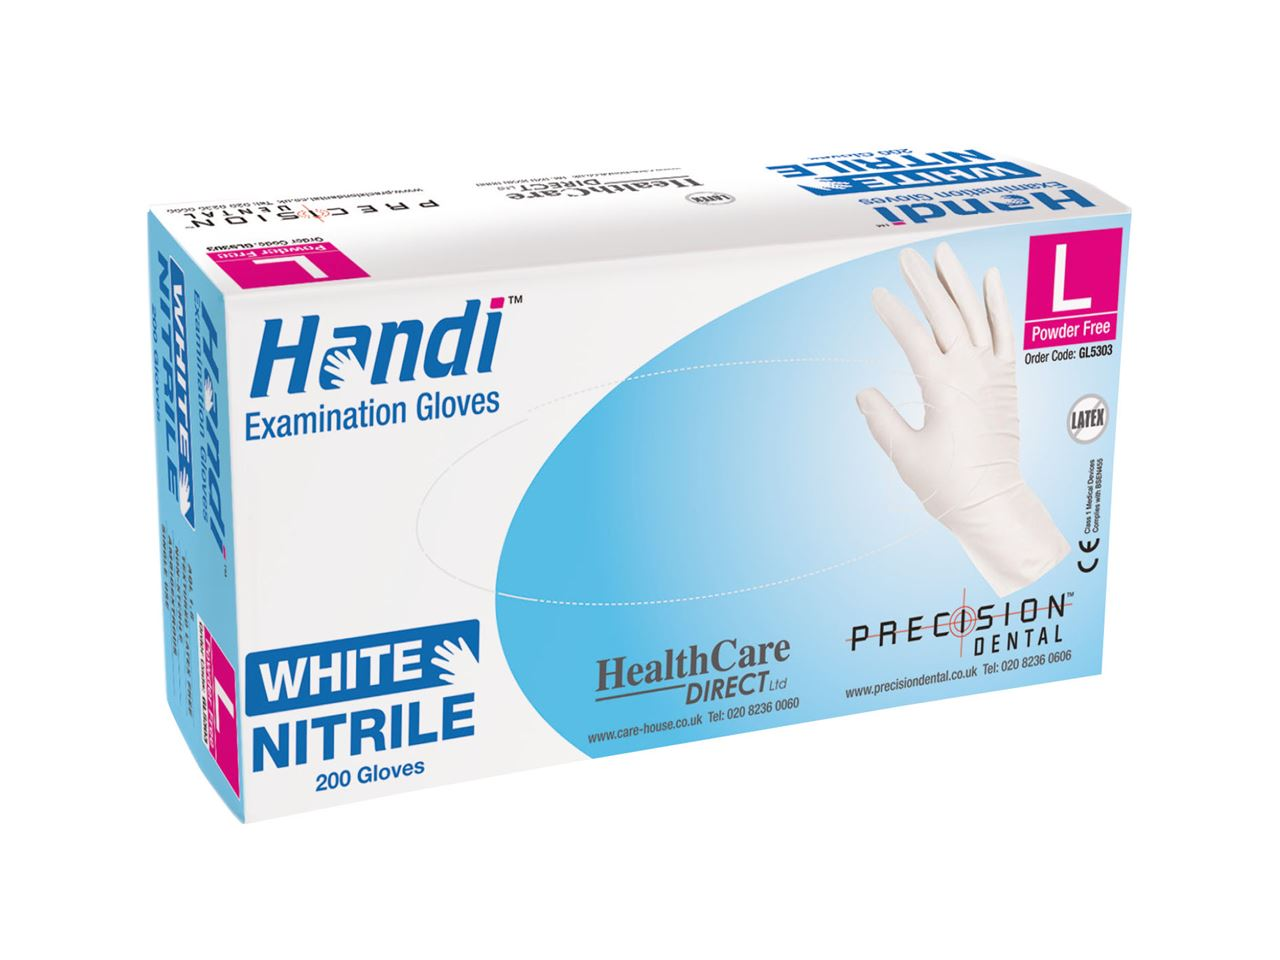 Picture for category White Nitrile Powder Free Gloves by Handi (200/box)